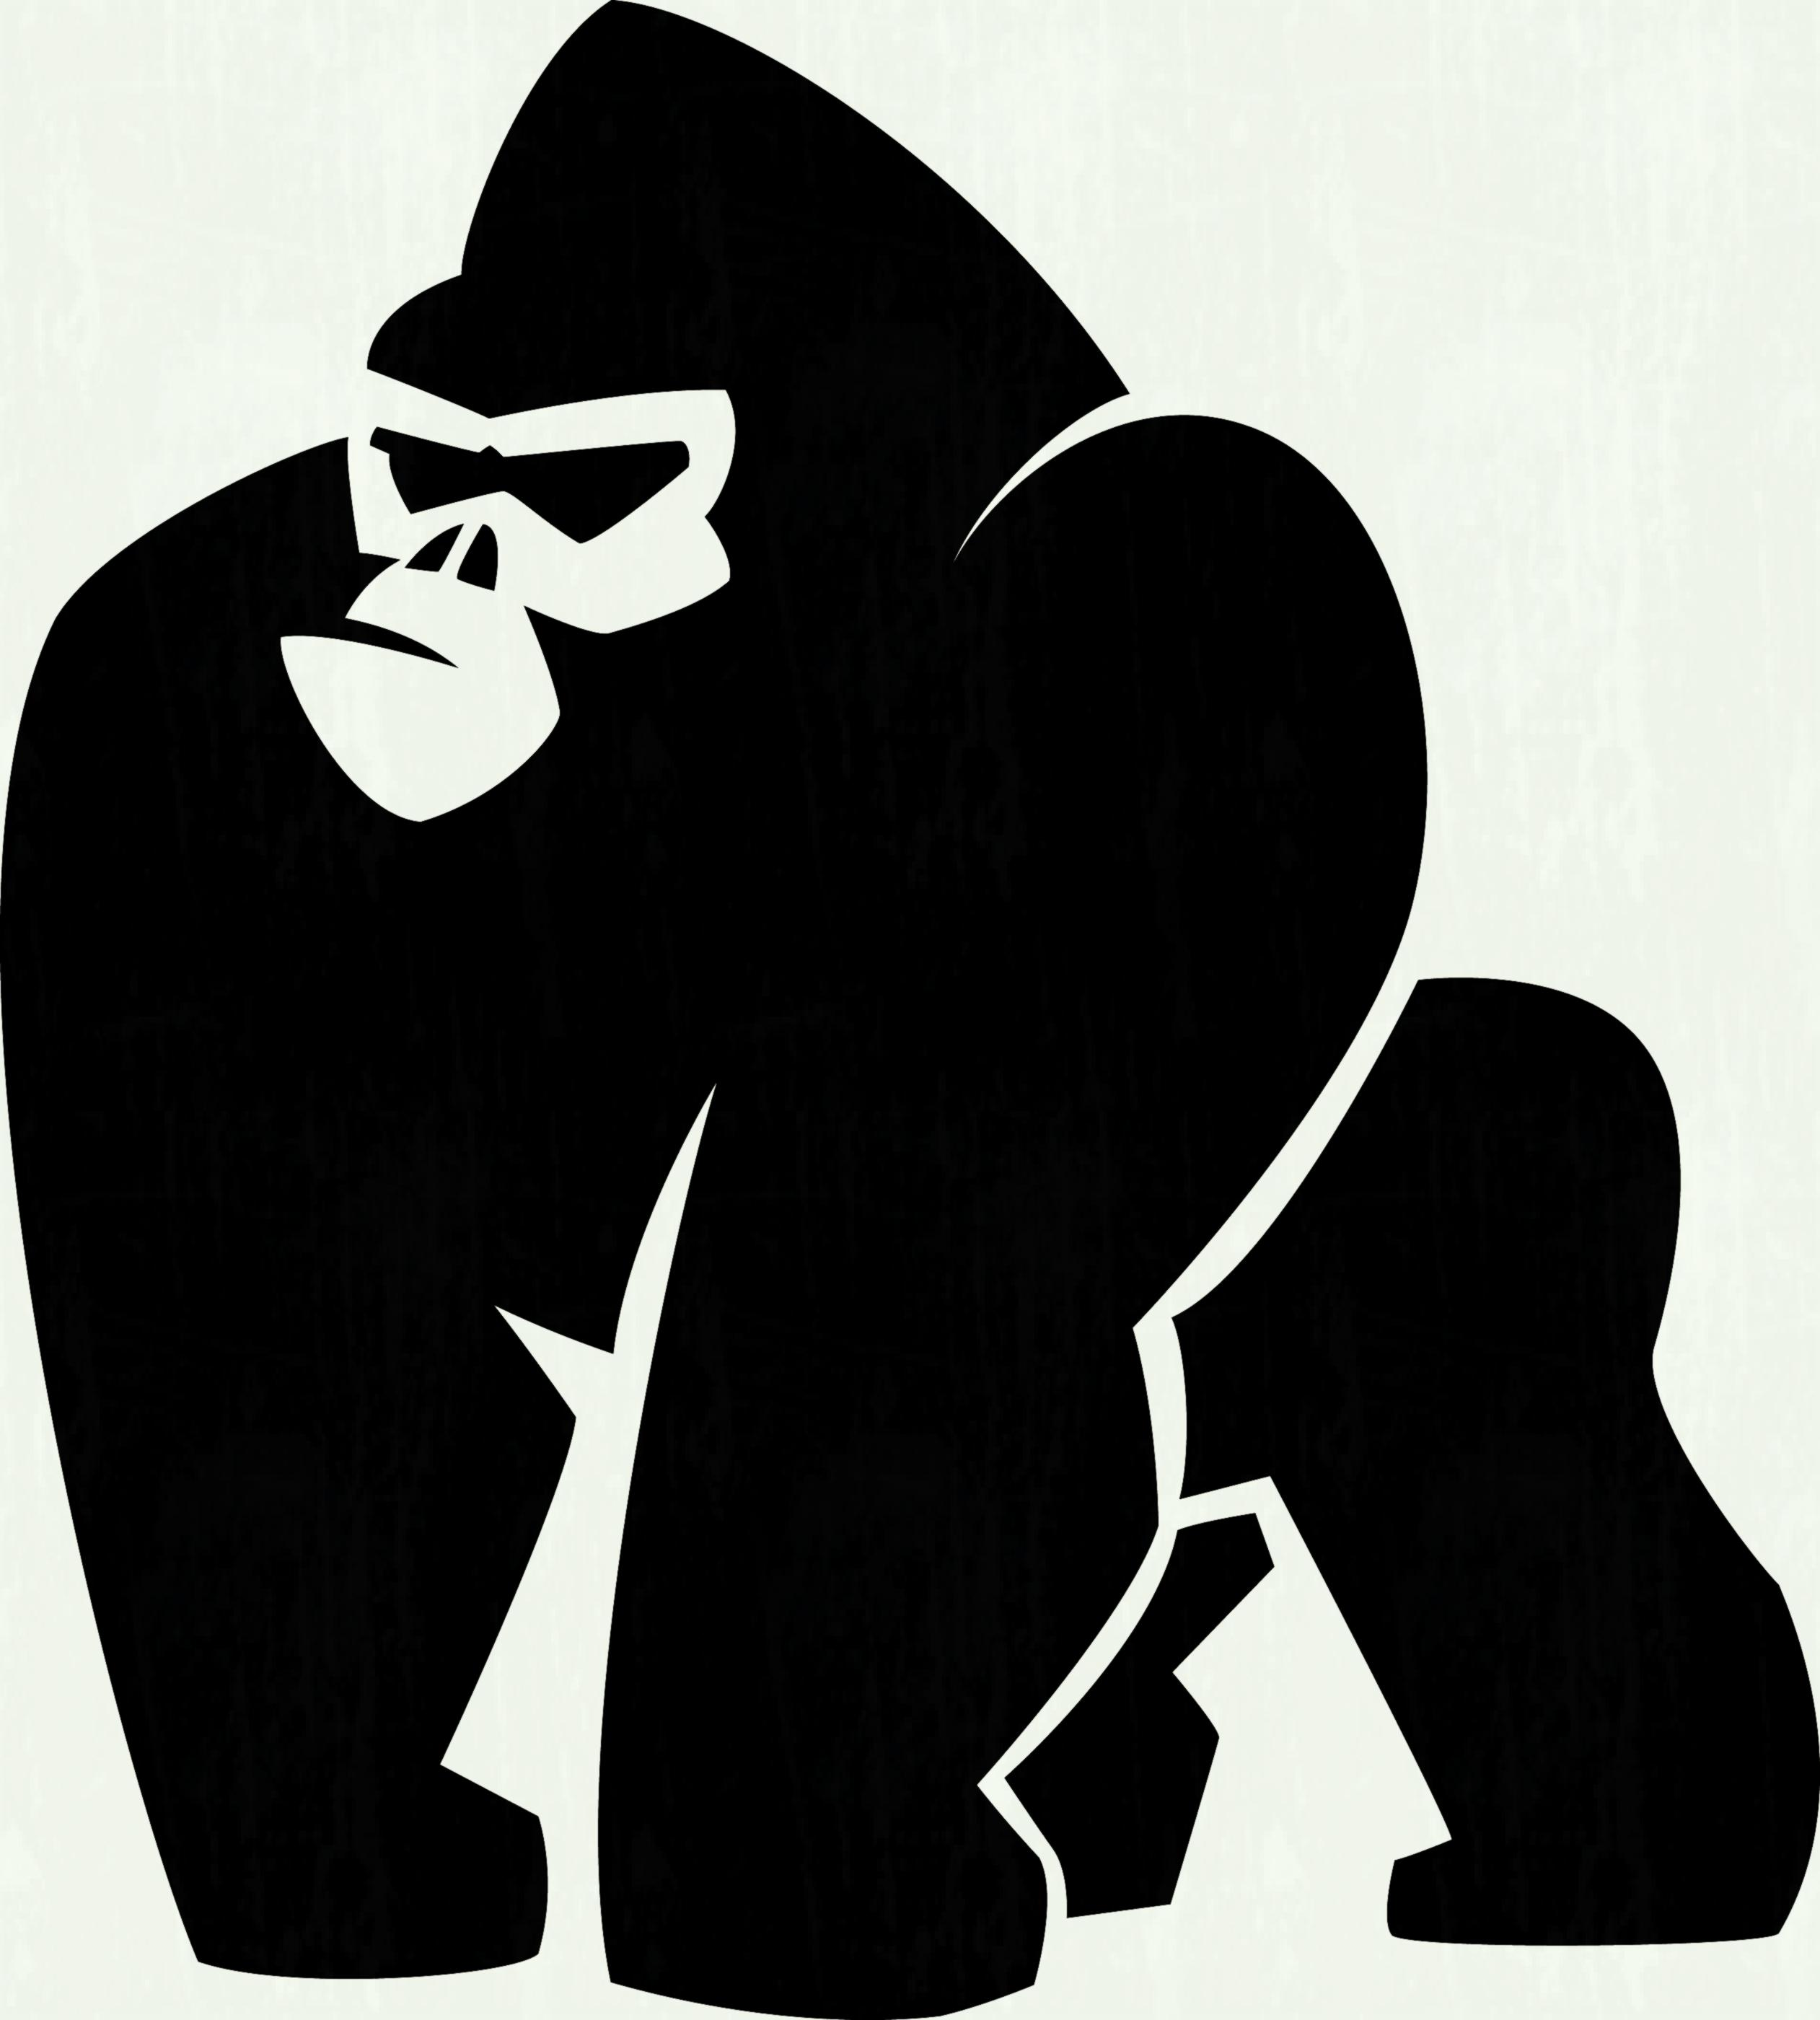 2523x2800 Gorilla Head Vector Graphic Illustration Black And White Royalty